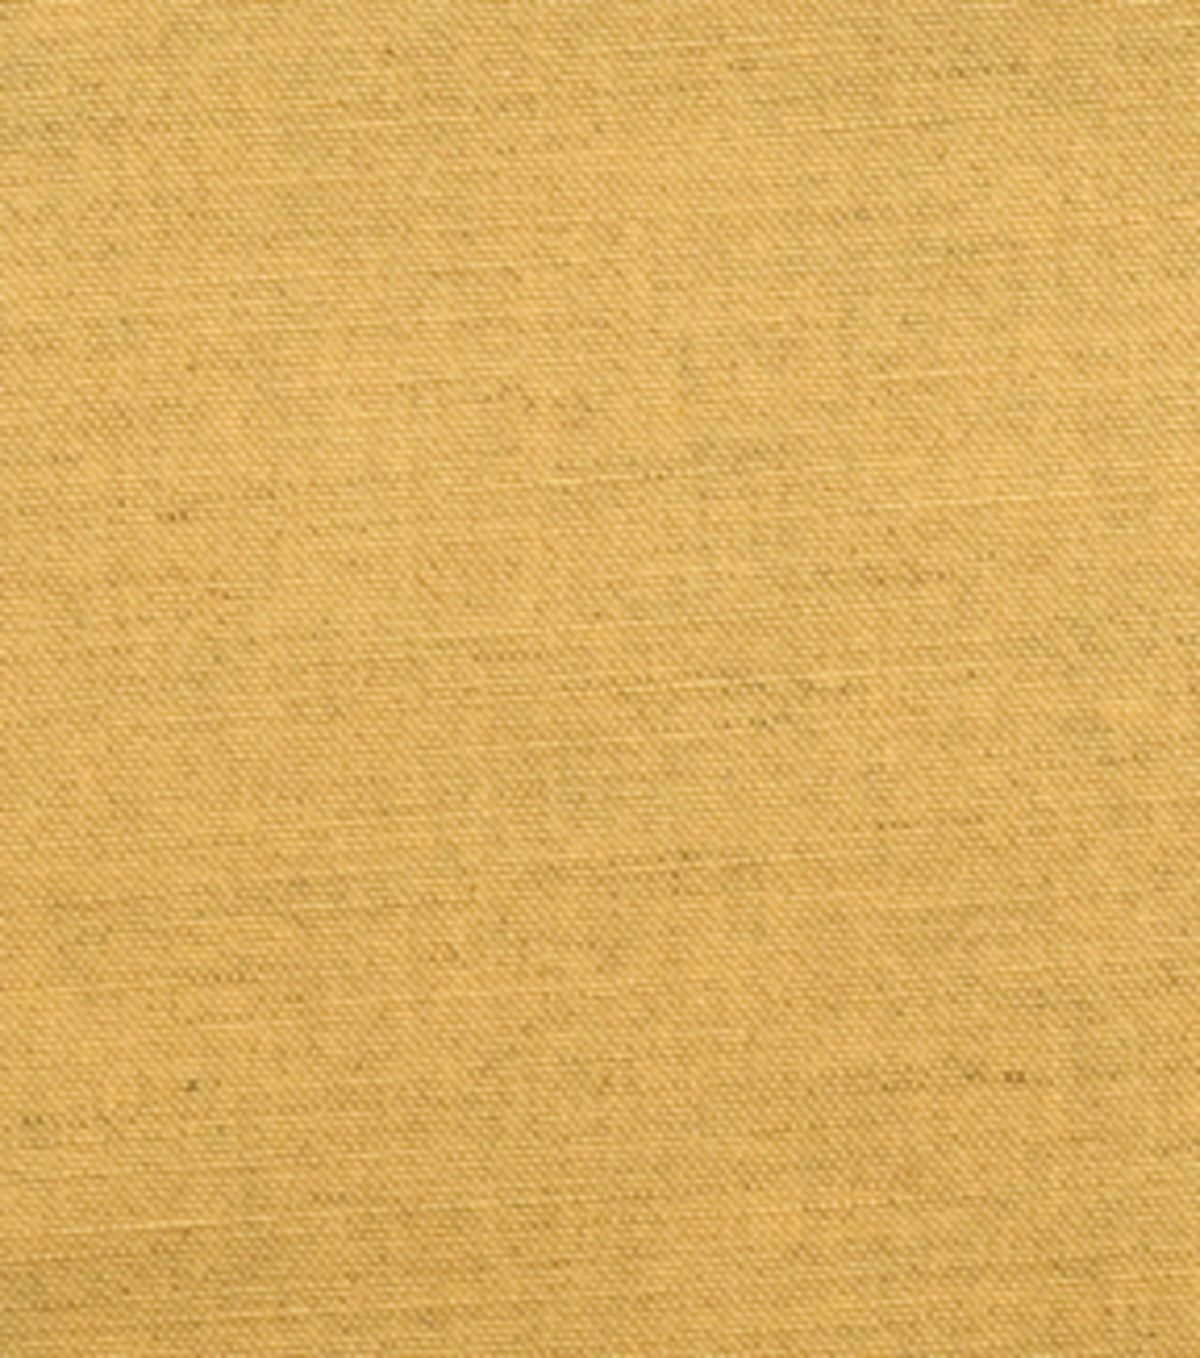 Home Decor 8\u0022x8\u0022 Fabric Swatch-Signature Series Linen-Cotton Butterscotch